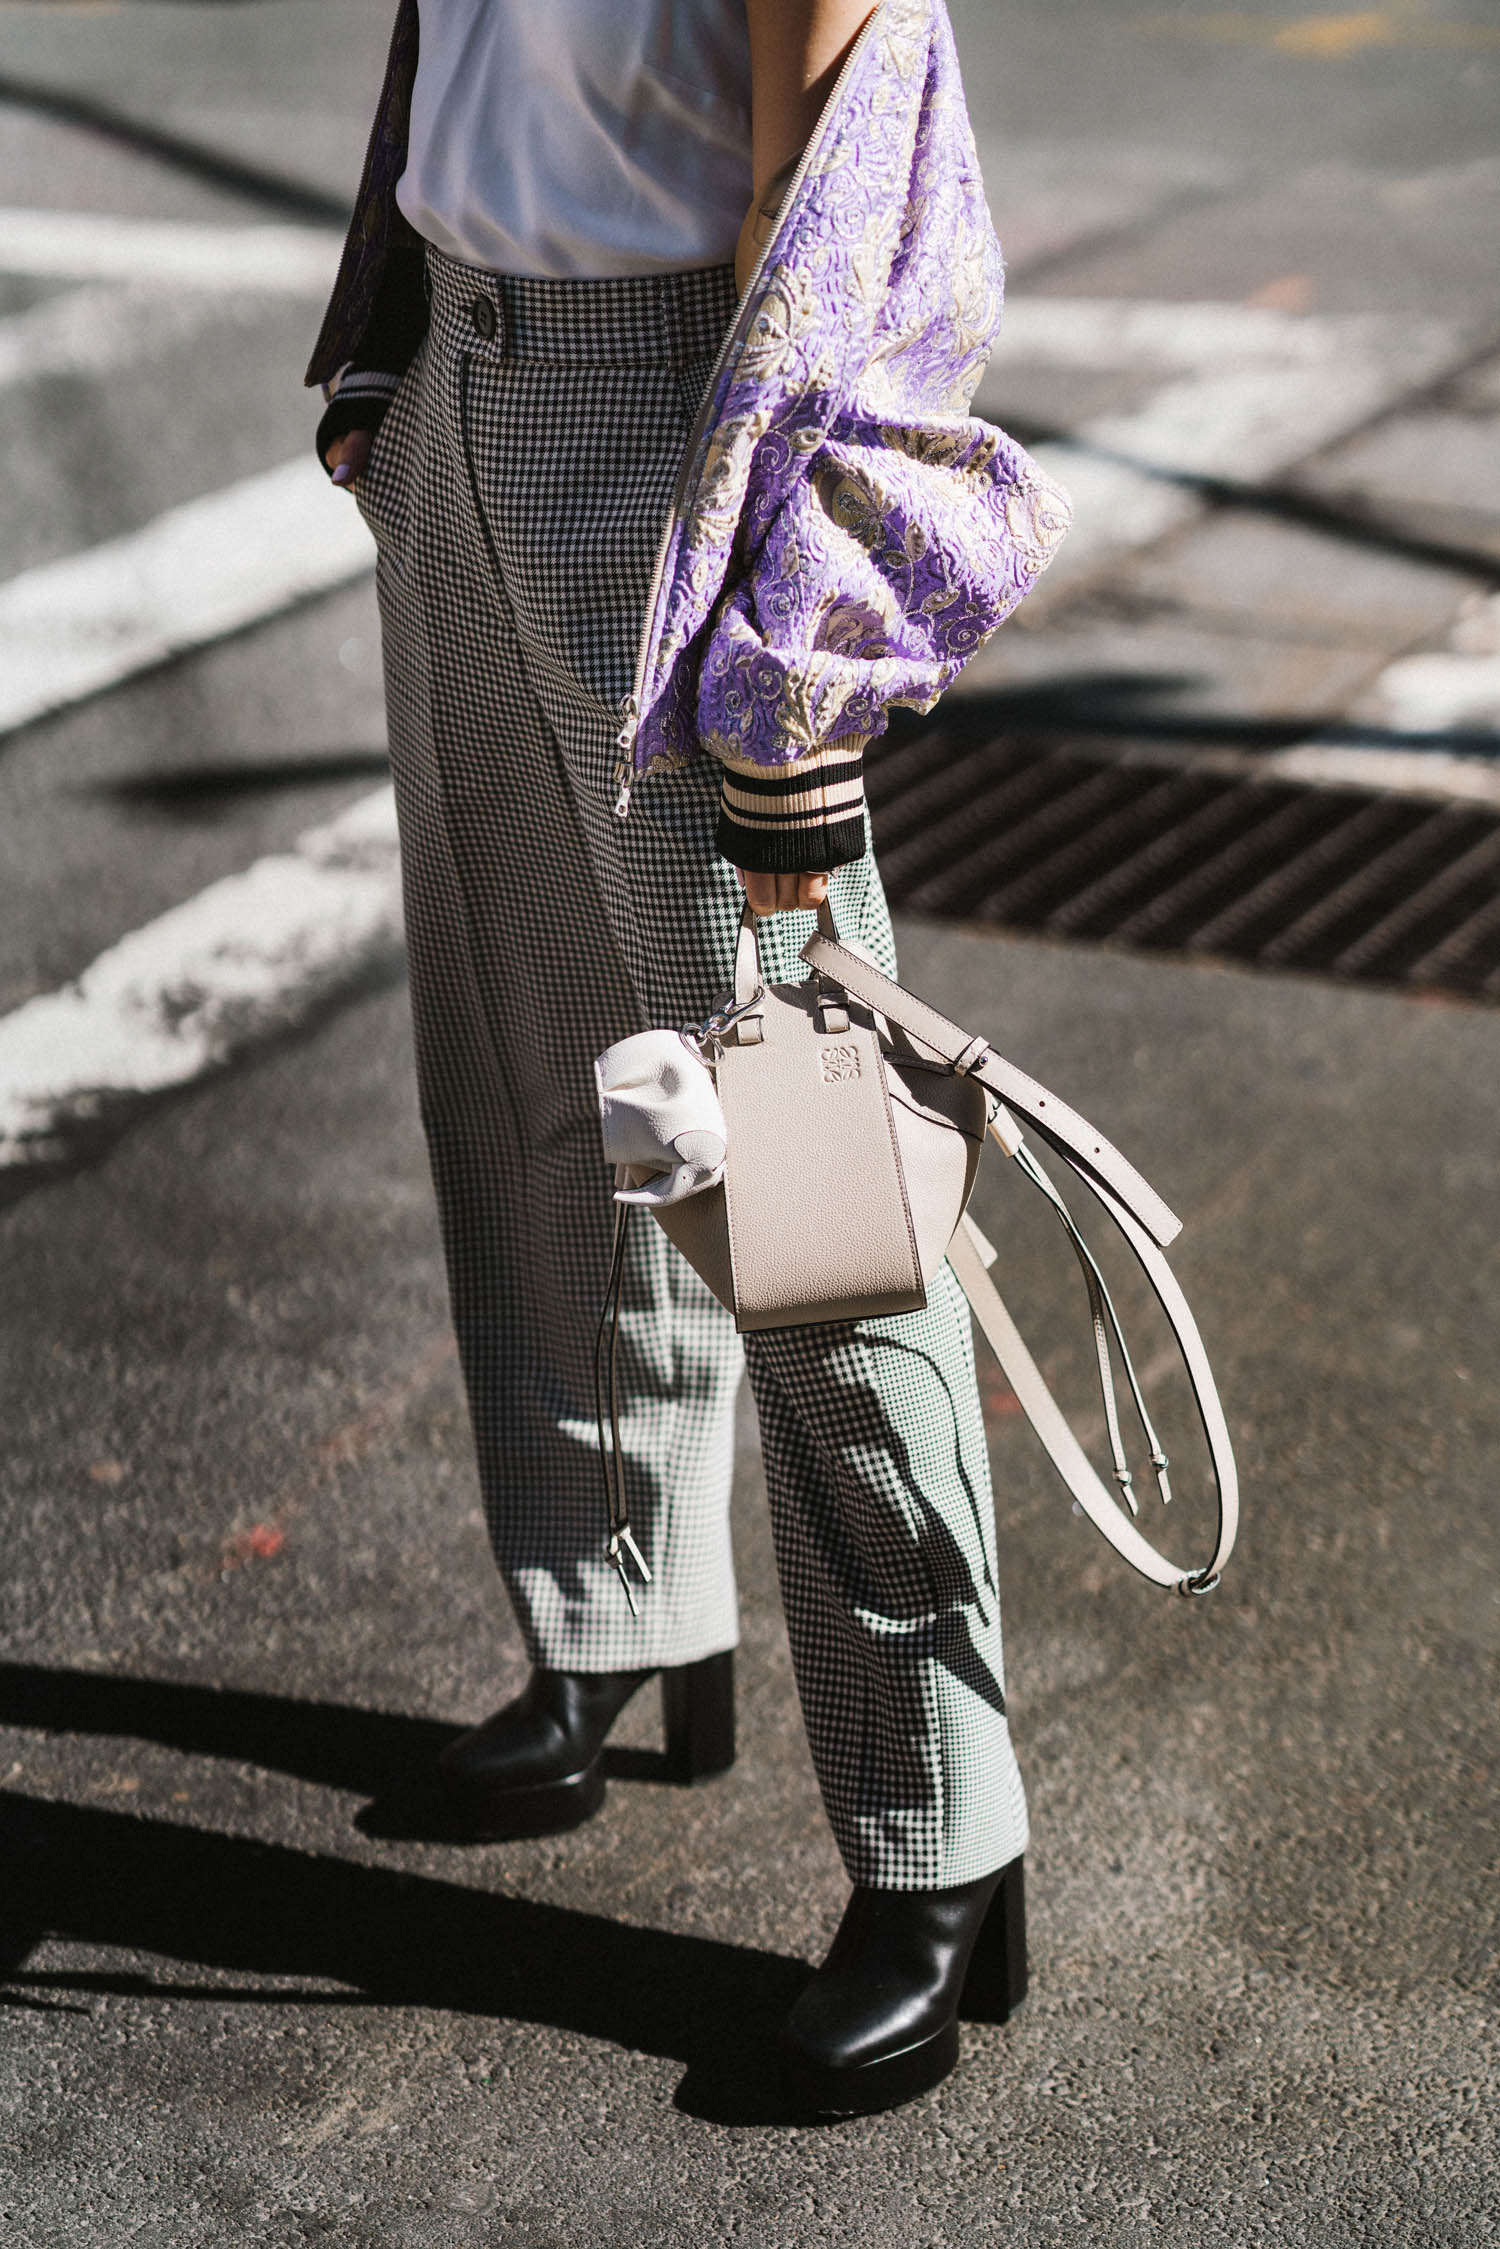 Dries Van Noten Jacket, Frame Top,  Tara Jarmon Pants , Alexander Wang Boots,  Loewe Bag  and Keychain, Celine Sunglasses